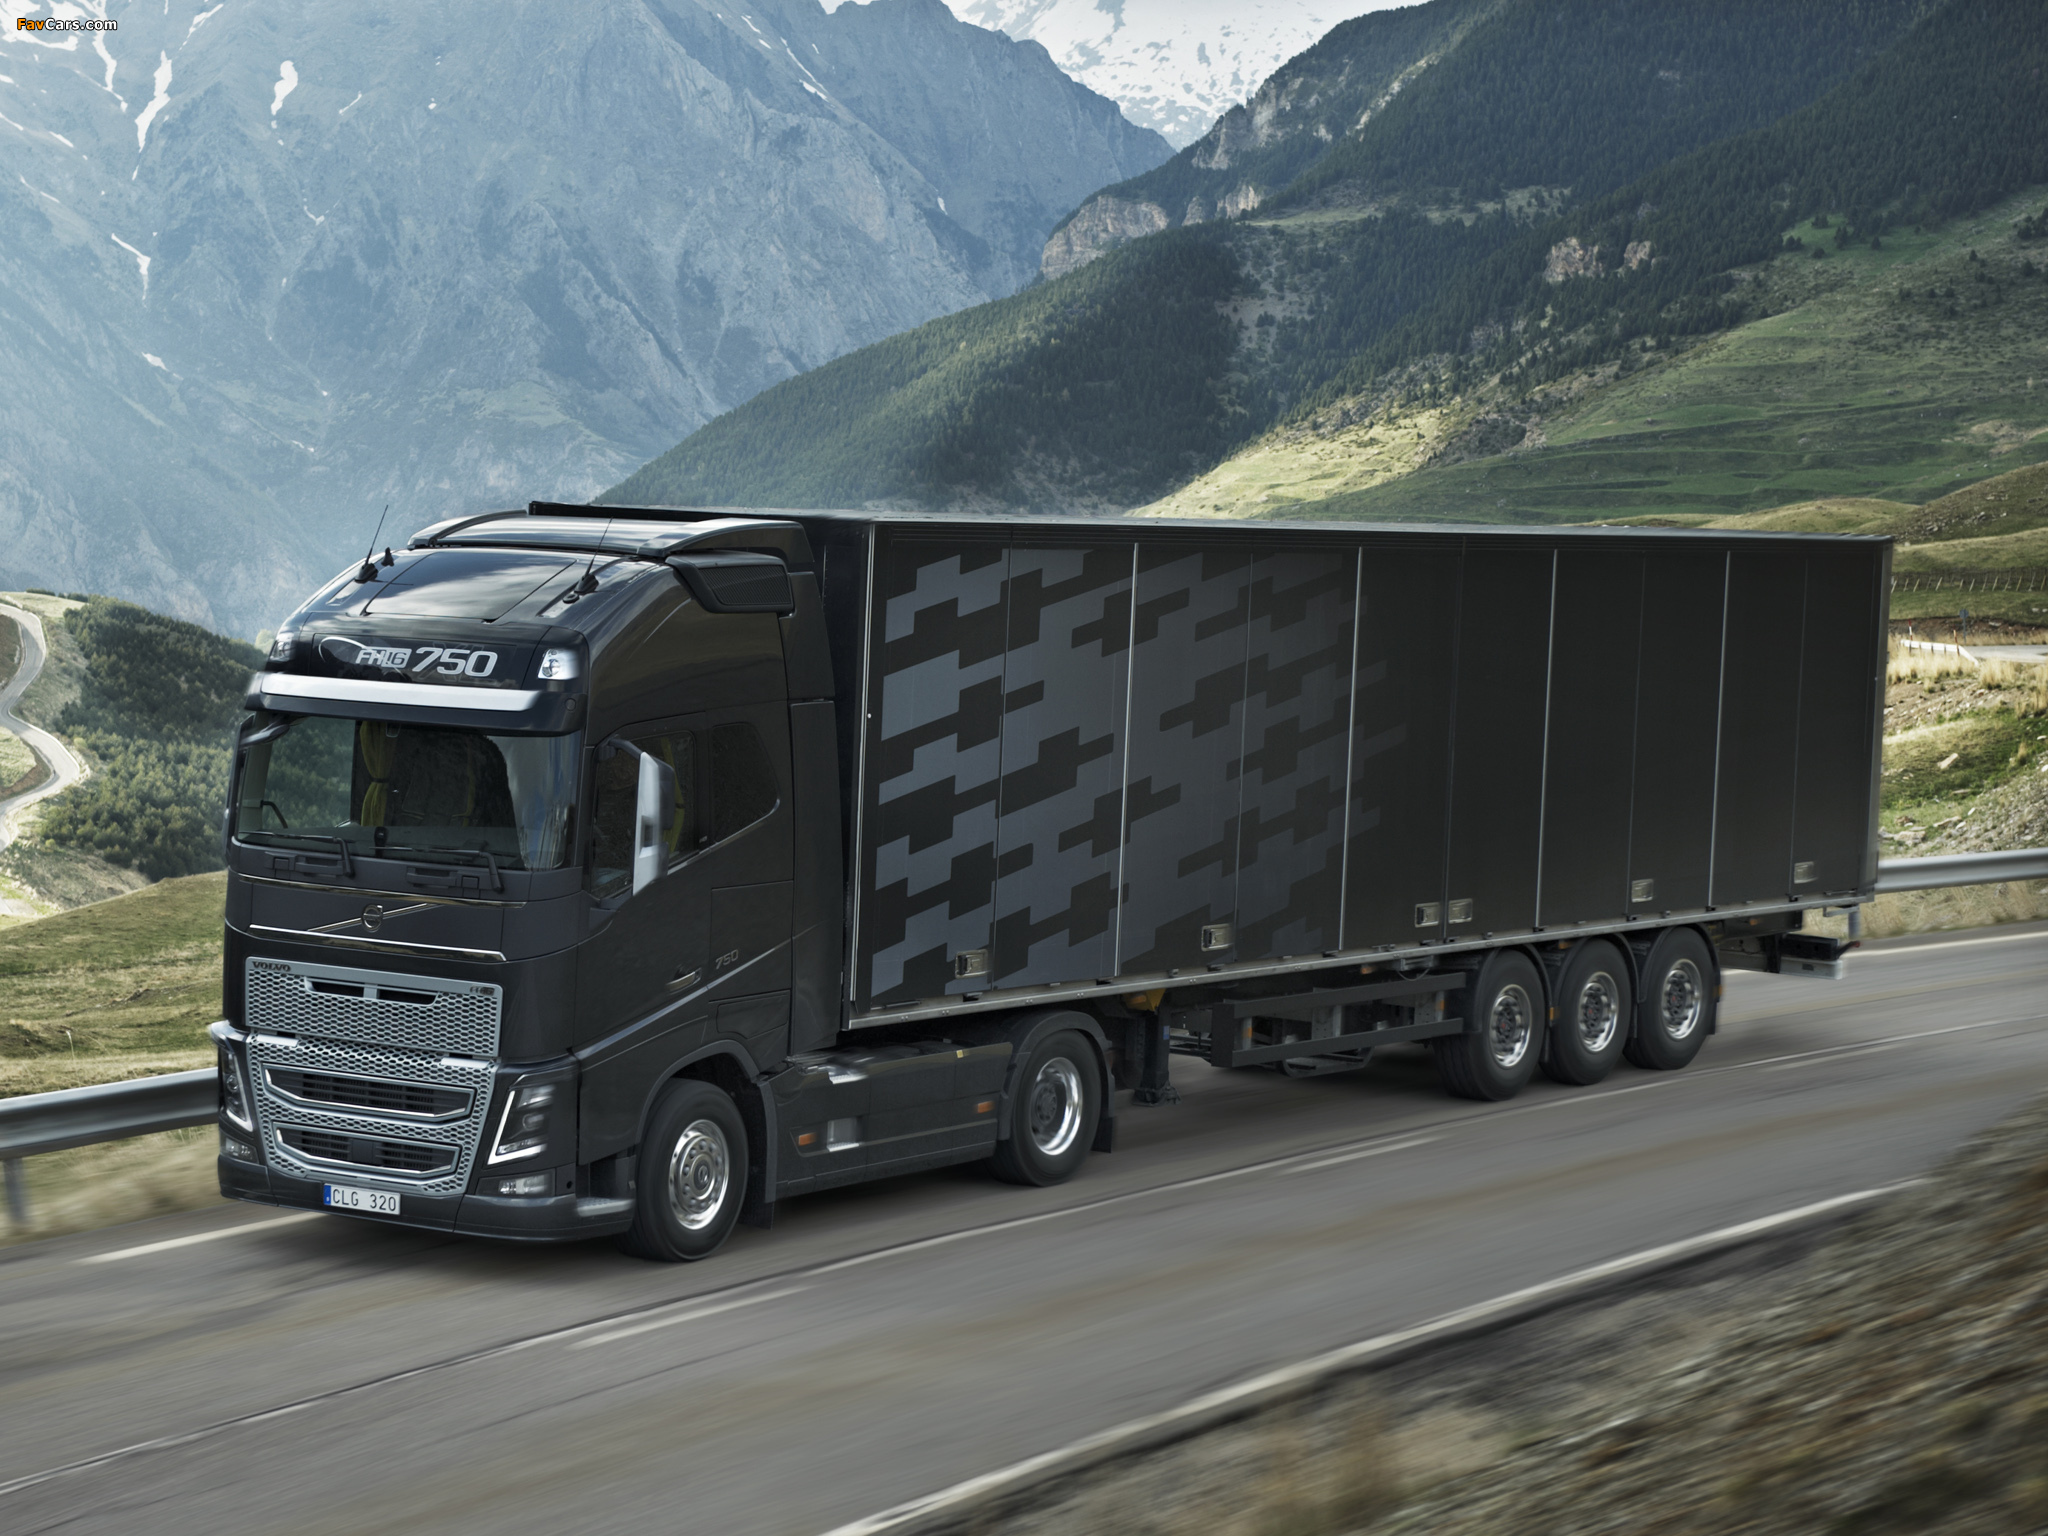 Volvo Fh16 750 4x2 2012 Images 2048x1536